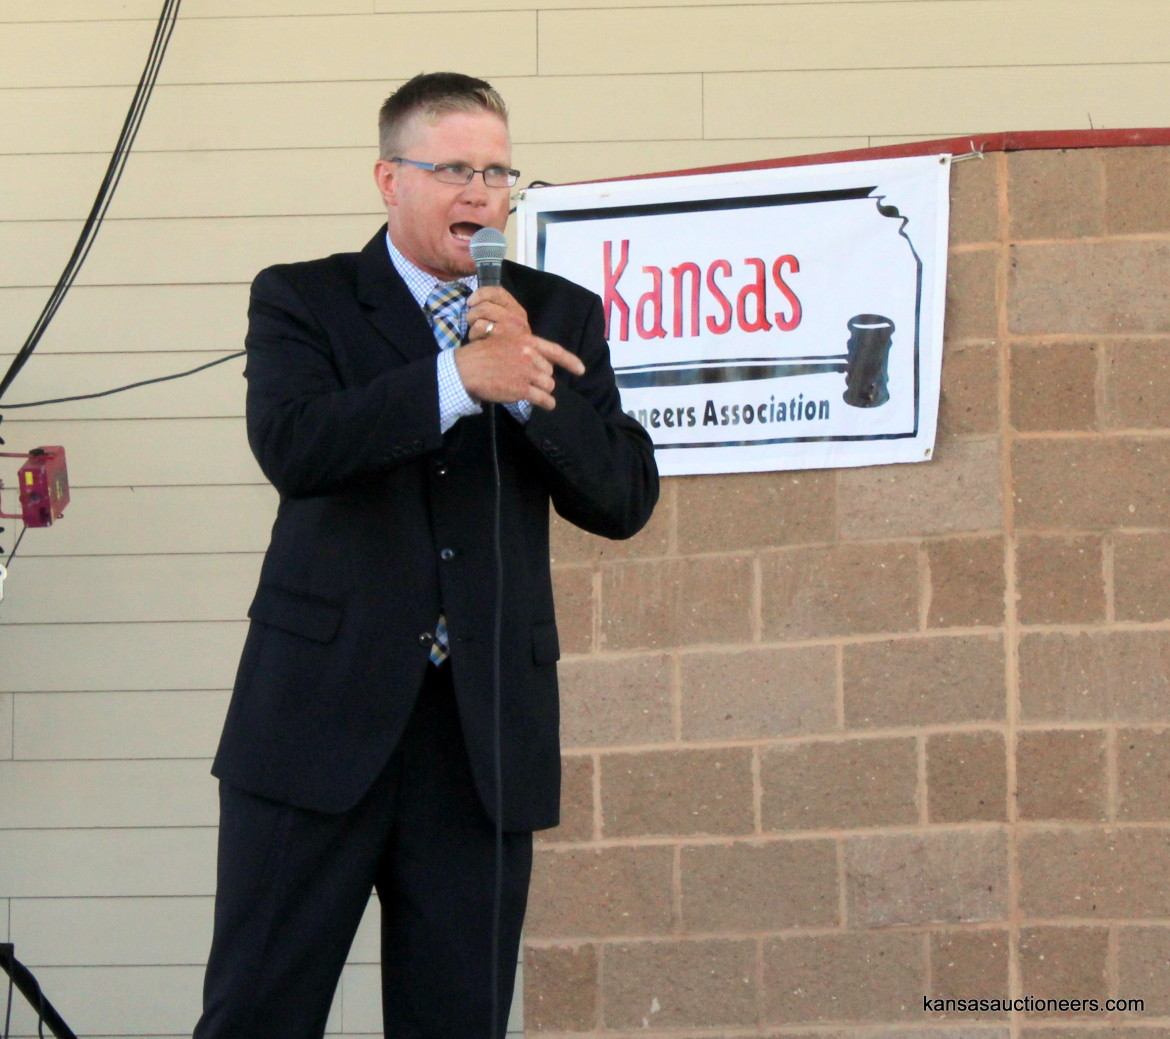 Justin Ball competing in the 2015 Kansas Auctioneer finals.